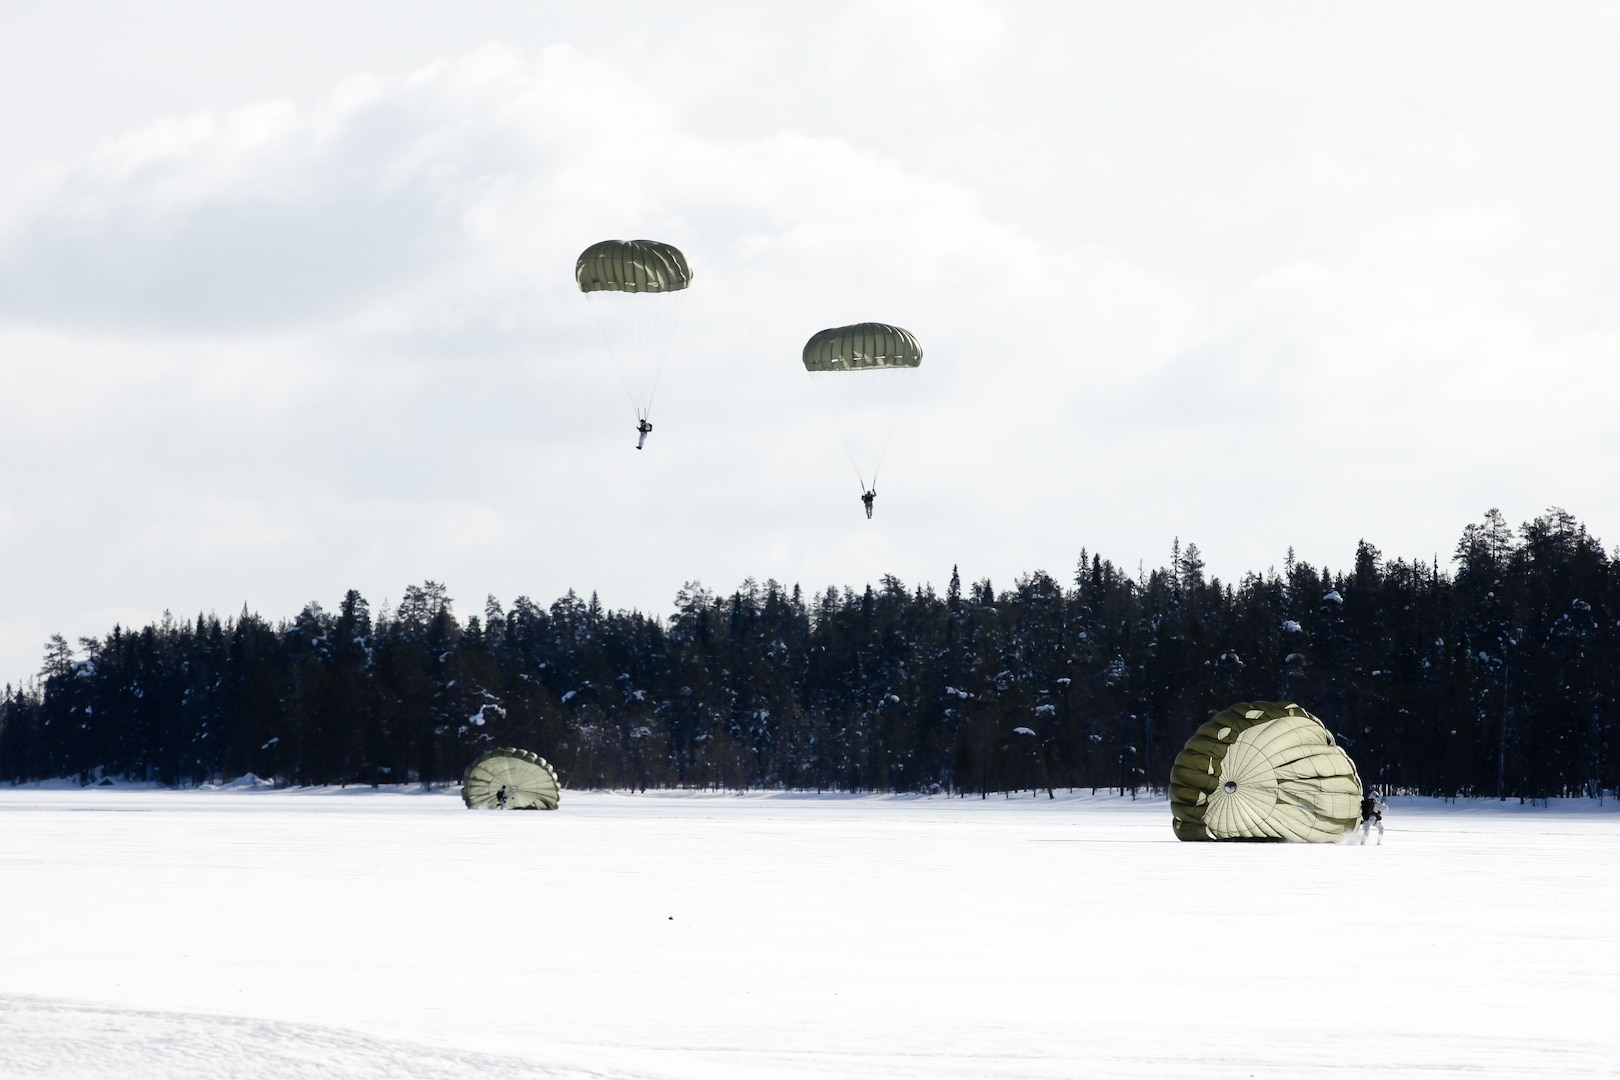 Soldiers jump with Finnish, Polish, and Estonian special operations forces from Lockheed C-130 Hercules during airborne operations over Rovaniemi, Finland, as part of Finnish-led Northern Griffin, March 14, 2018 (U.S. Army/Kent Redmond)